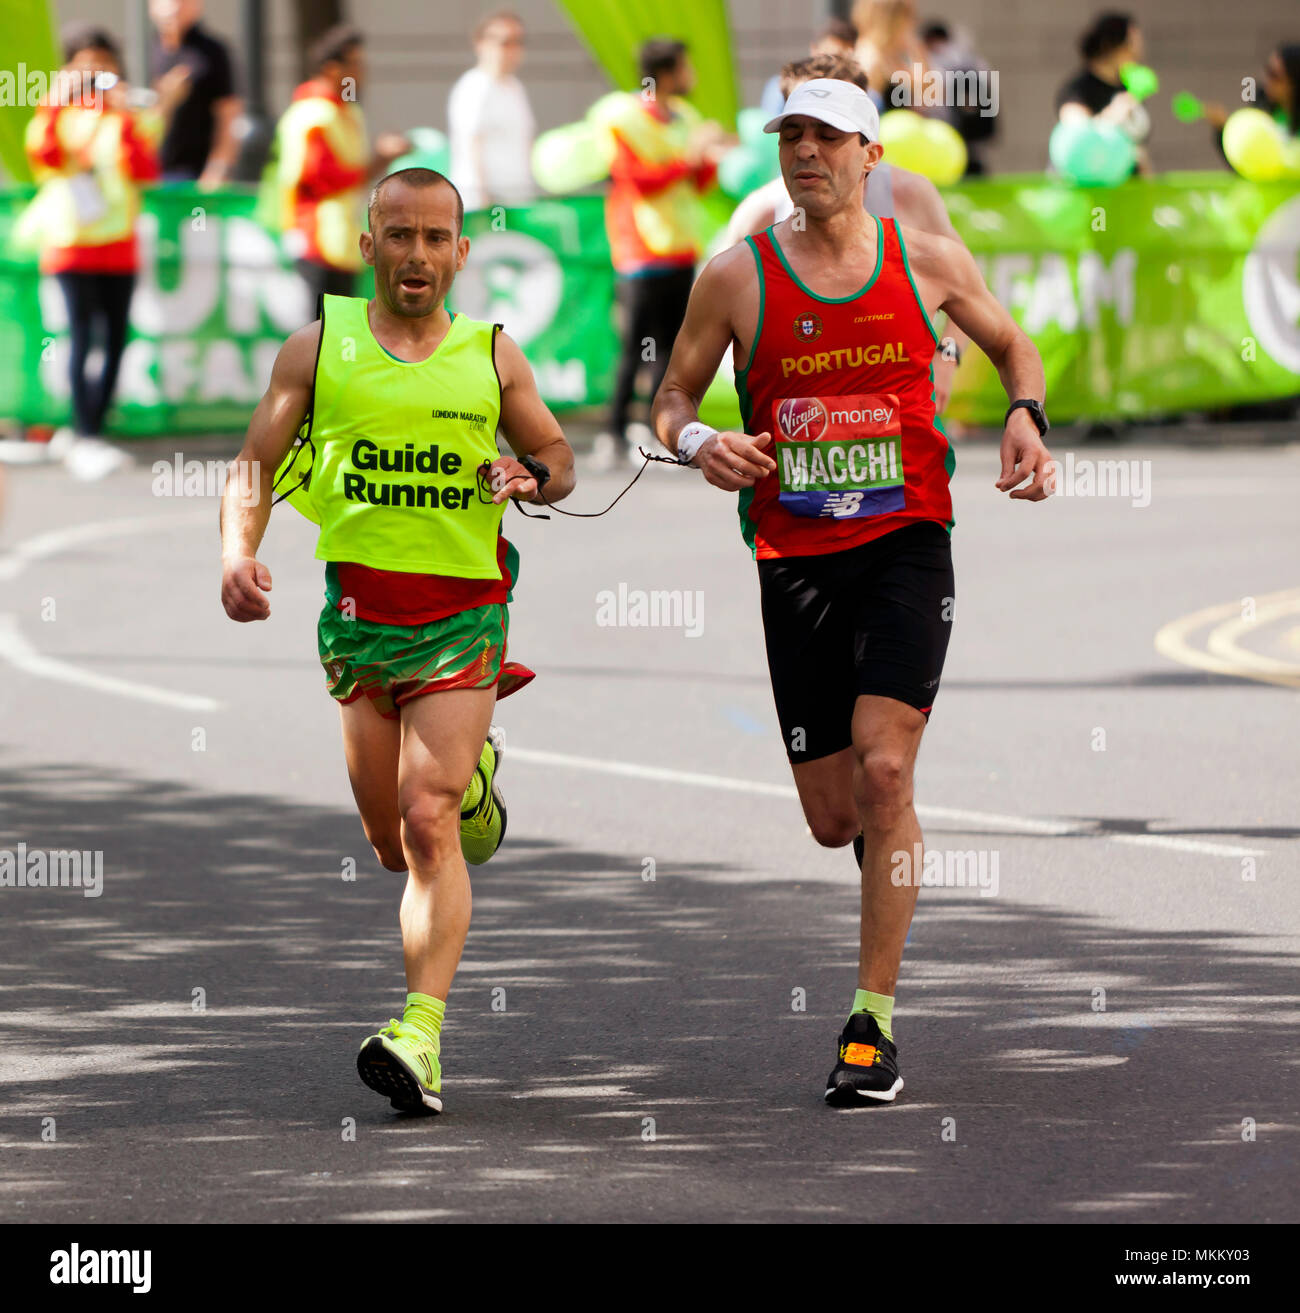 Gabriel Macchi  competing for Portugal in the World Para Athletics World Cup, Part of the 2018 London Marathon. He  finished 9th in a time of 02:44:02 Stock Photo